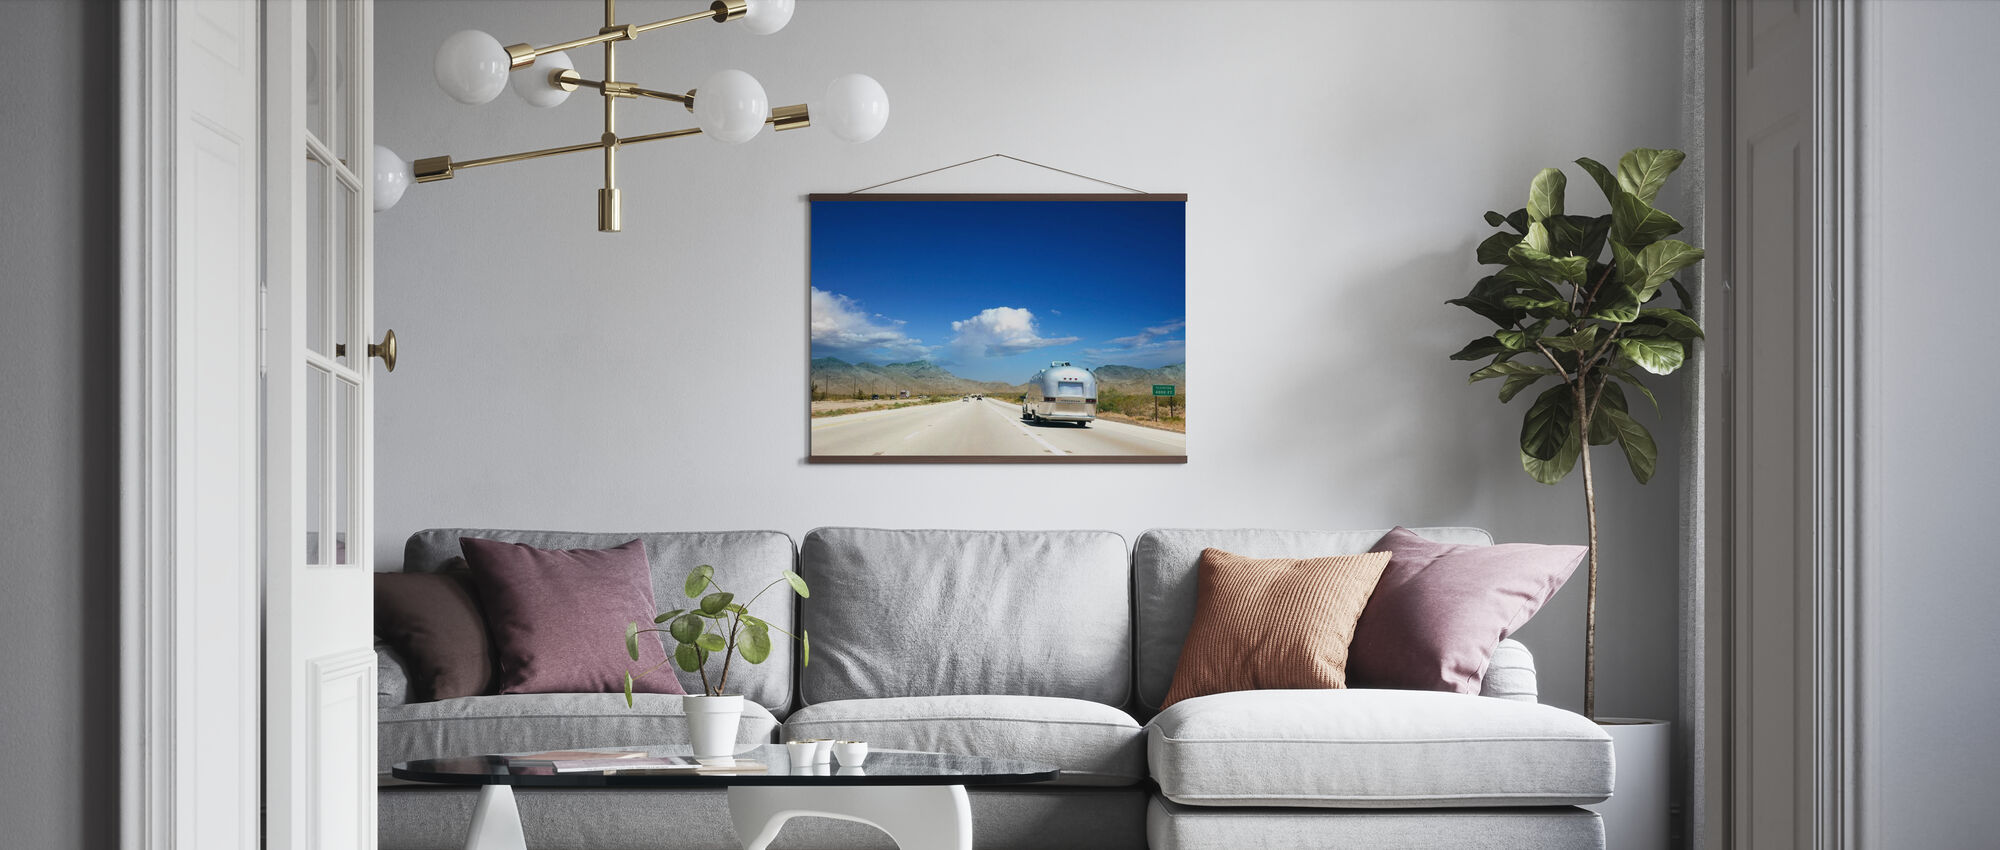 Caravan in Nevada, USA - Poster - Living Room